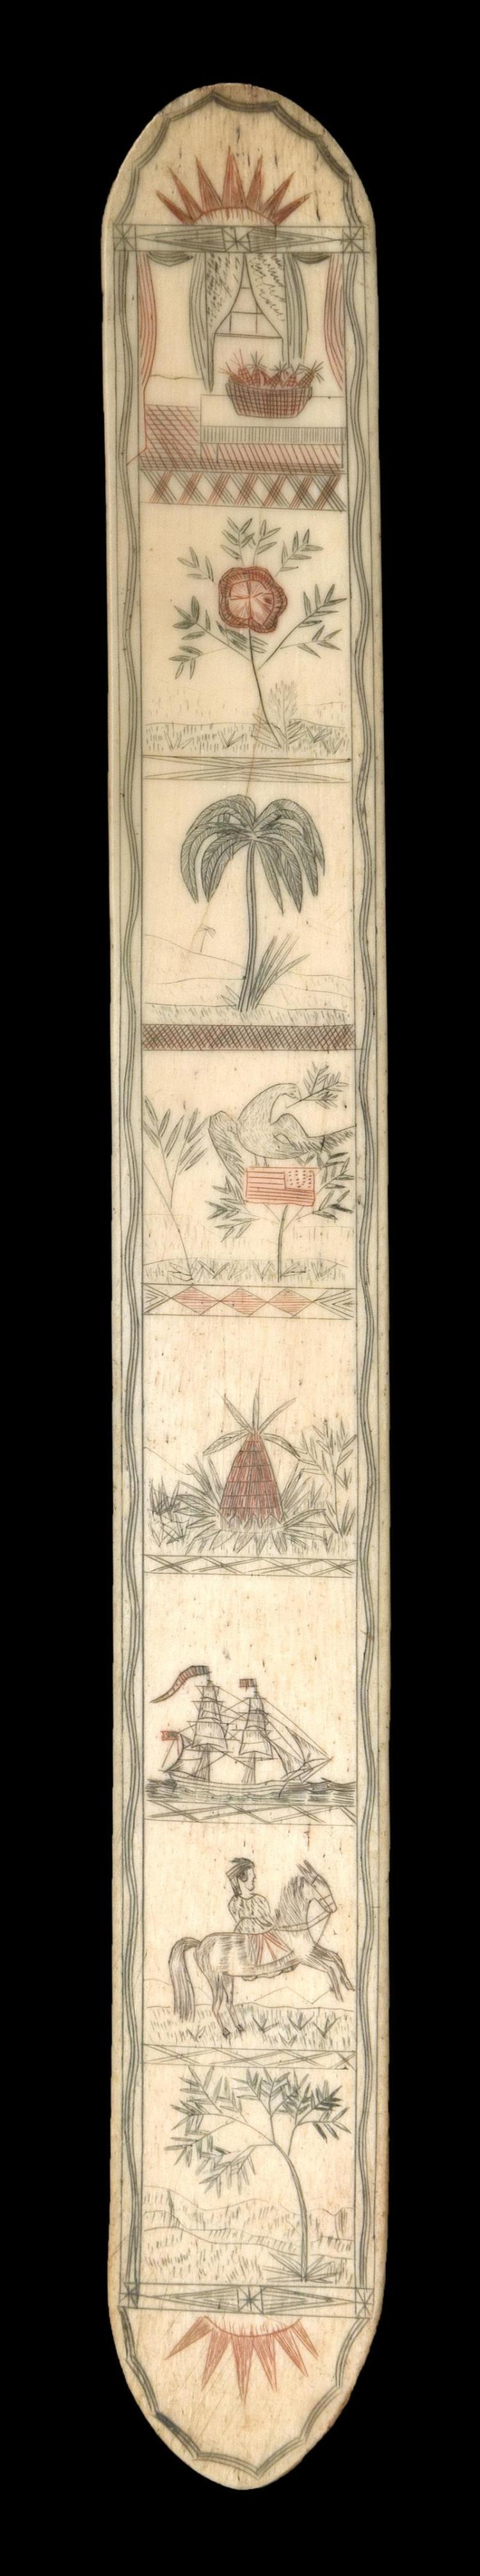 POLYCHROME SCRIMSHAW WHALEBONE BUSK Depicts a partial sunrise, an interior scene, a flower, a palm tree, an eagle atop an American f...